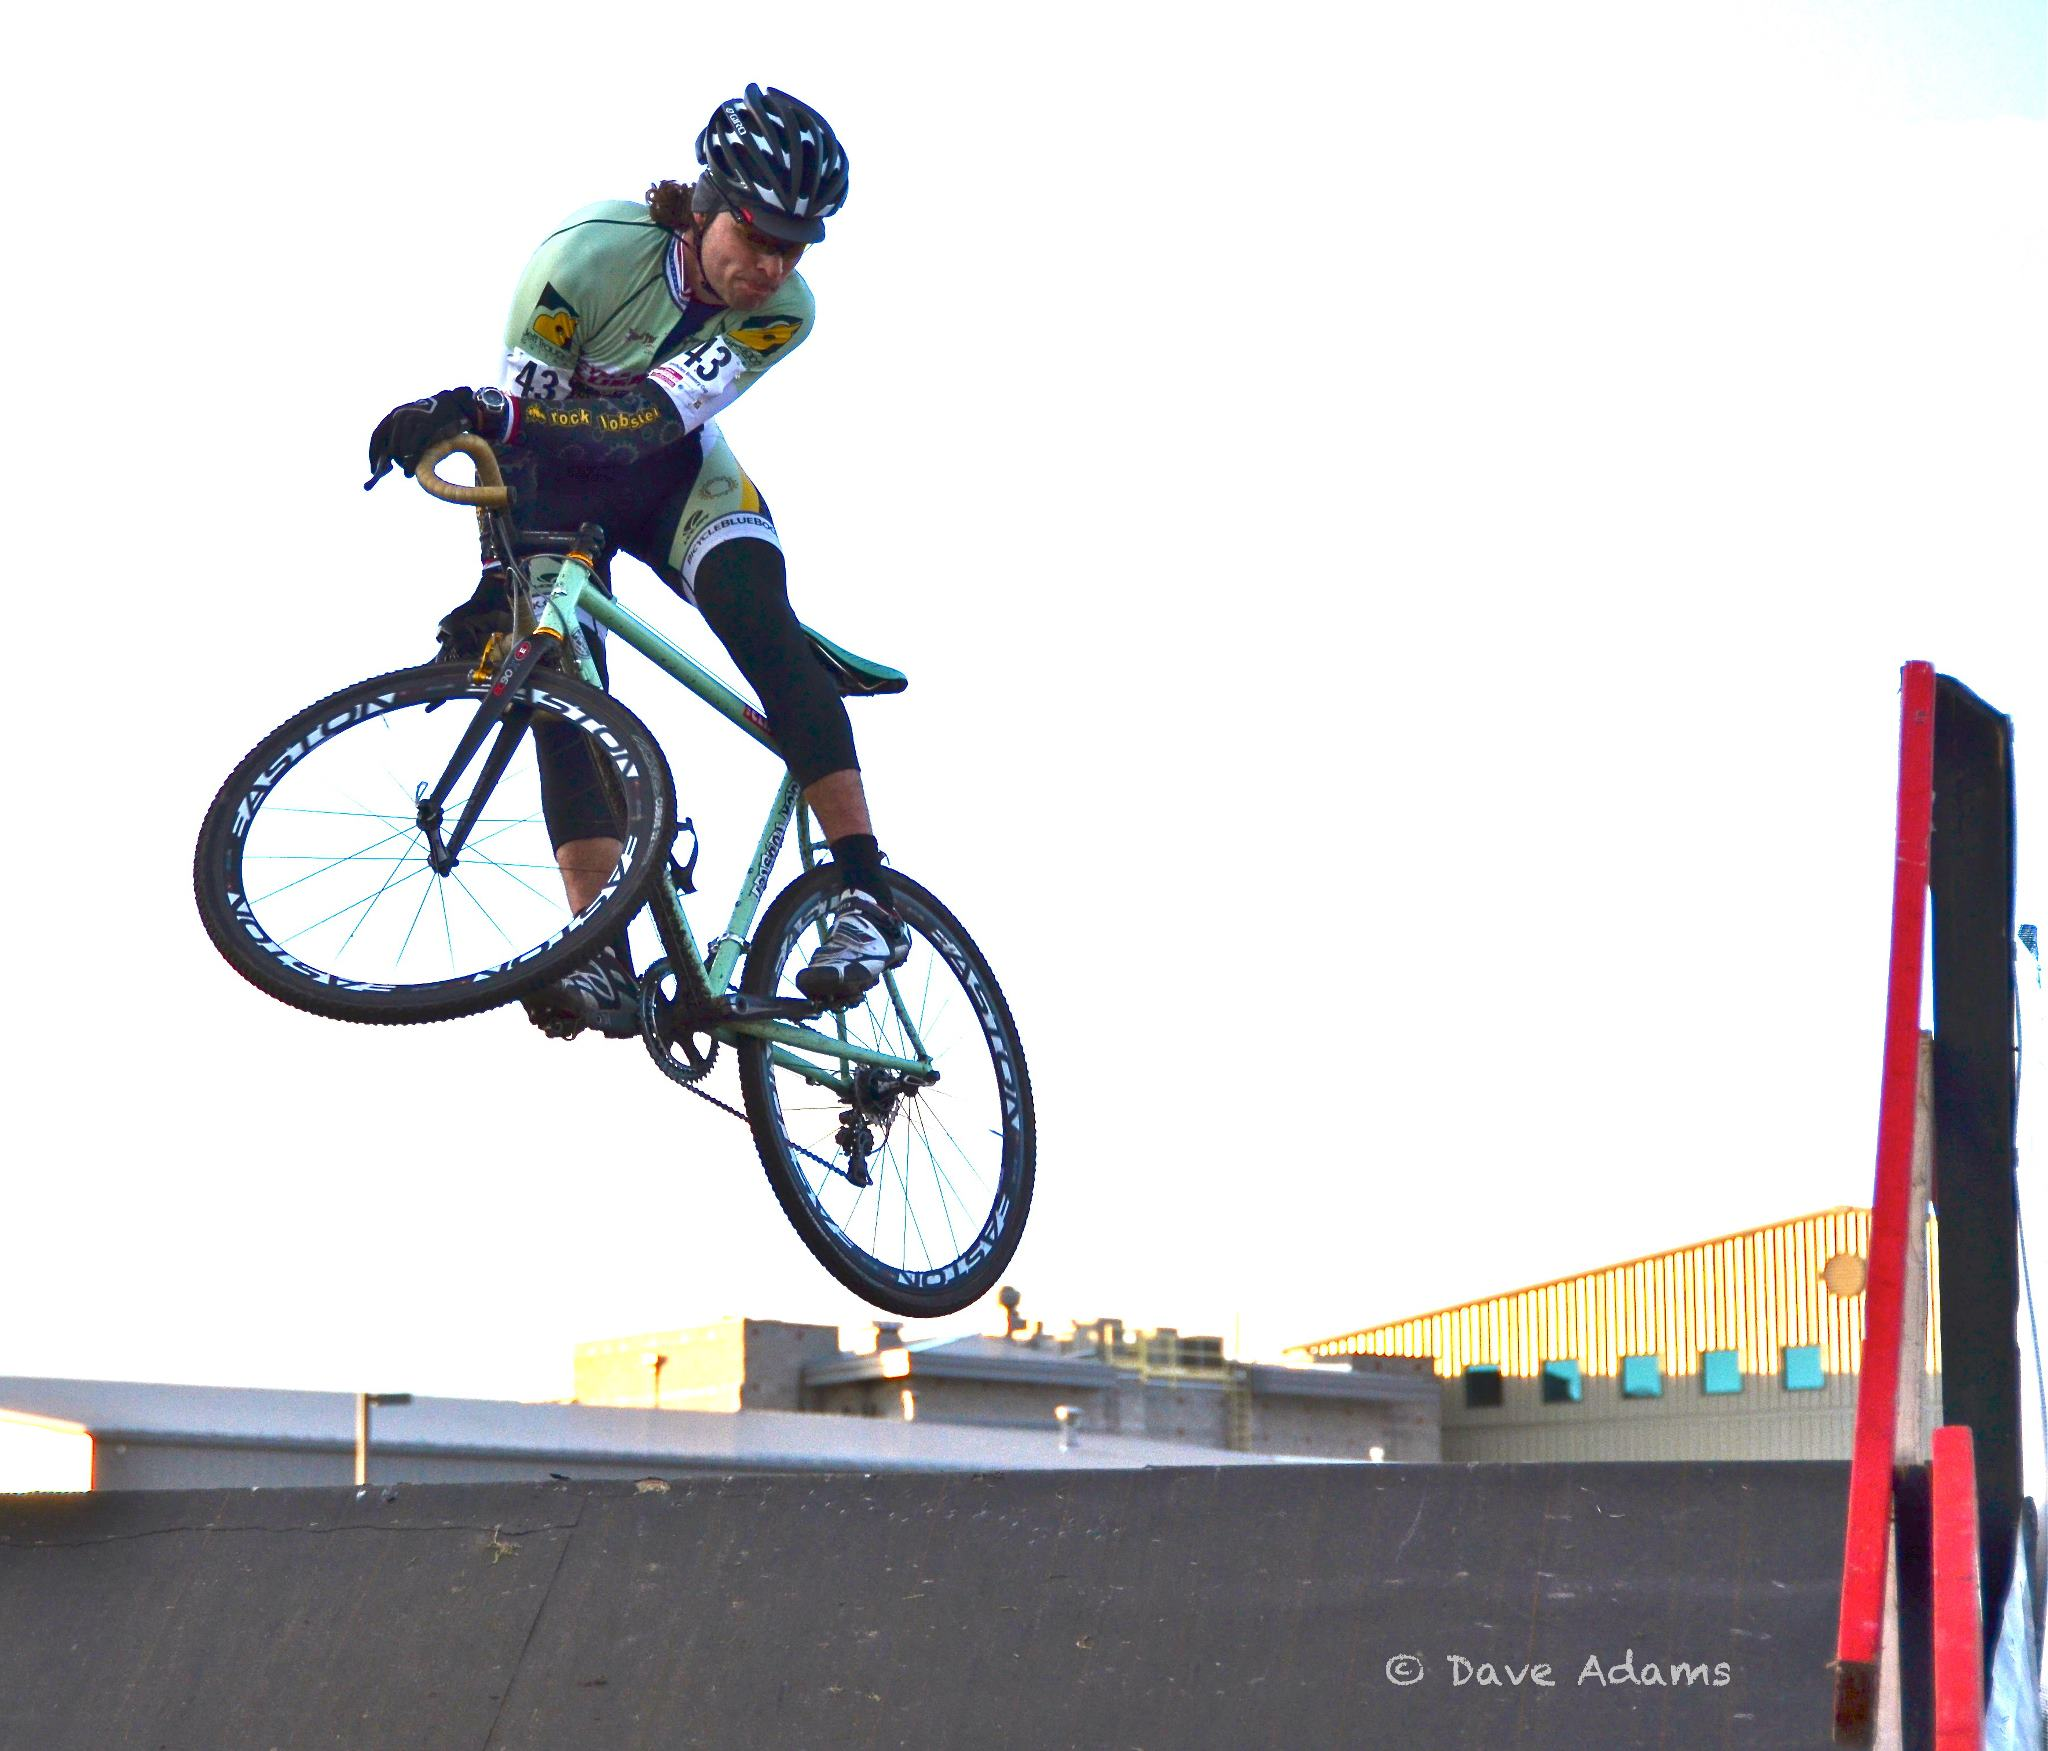 Aaron Bradford Cross Bike Jump